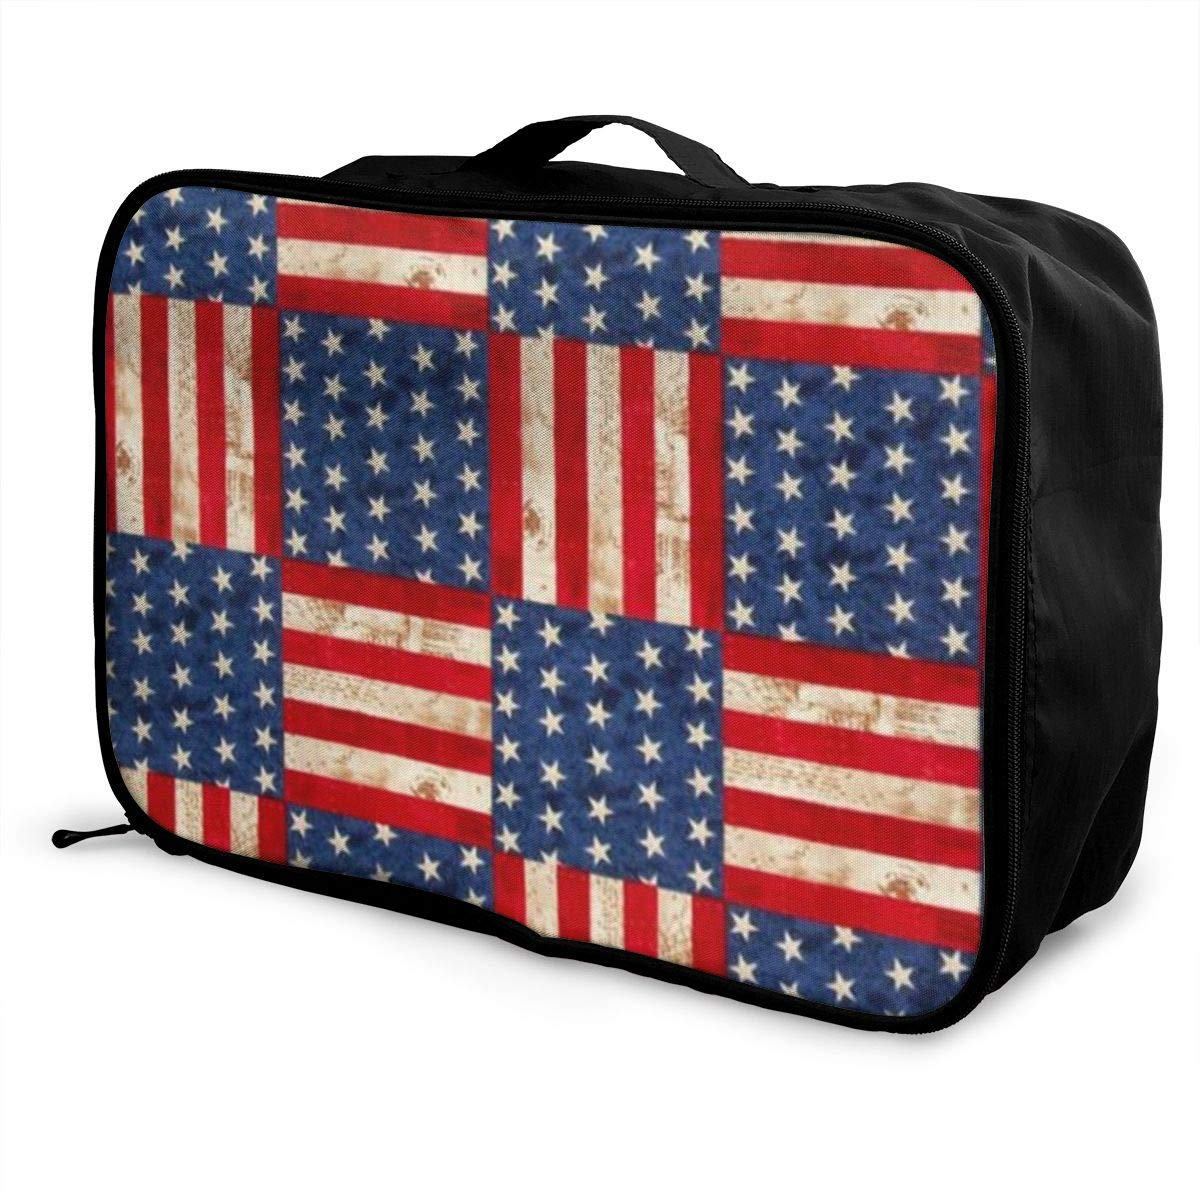 ADGAI Creative American Flag Canvas Travel Weekender Bag,Fashion Custom Lightweight Large Capacity Portable Luggage Bag,Suitcase Trolley Bag